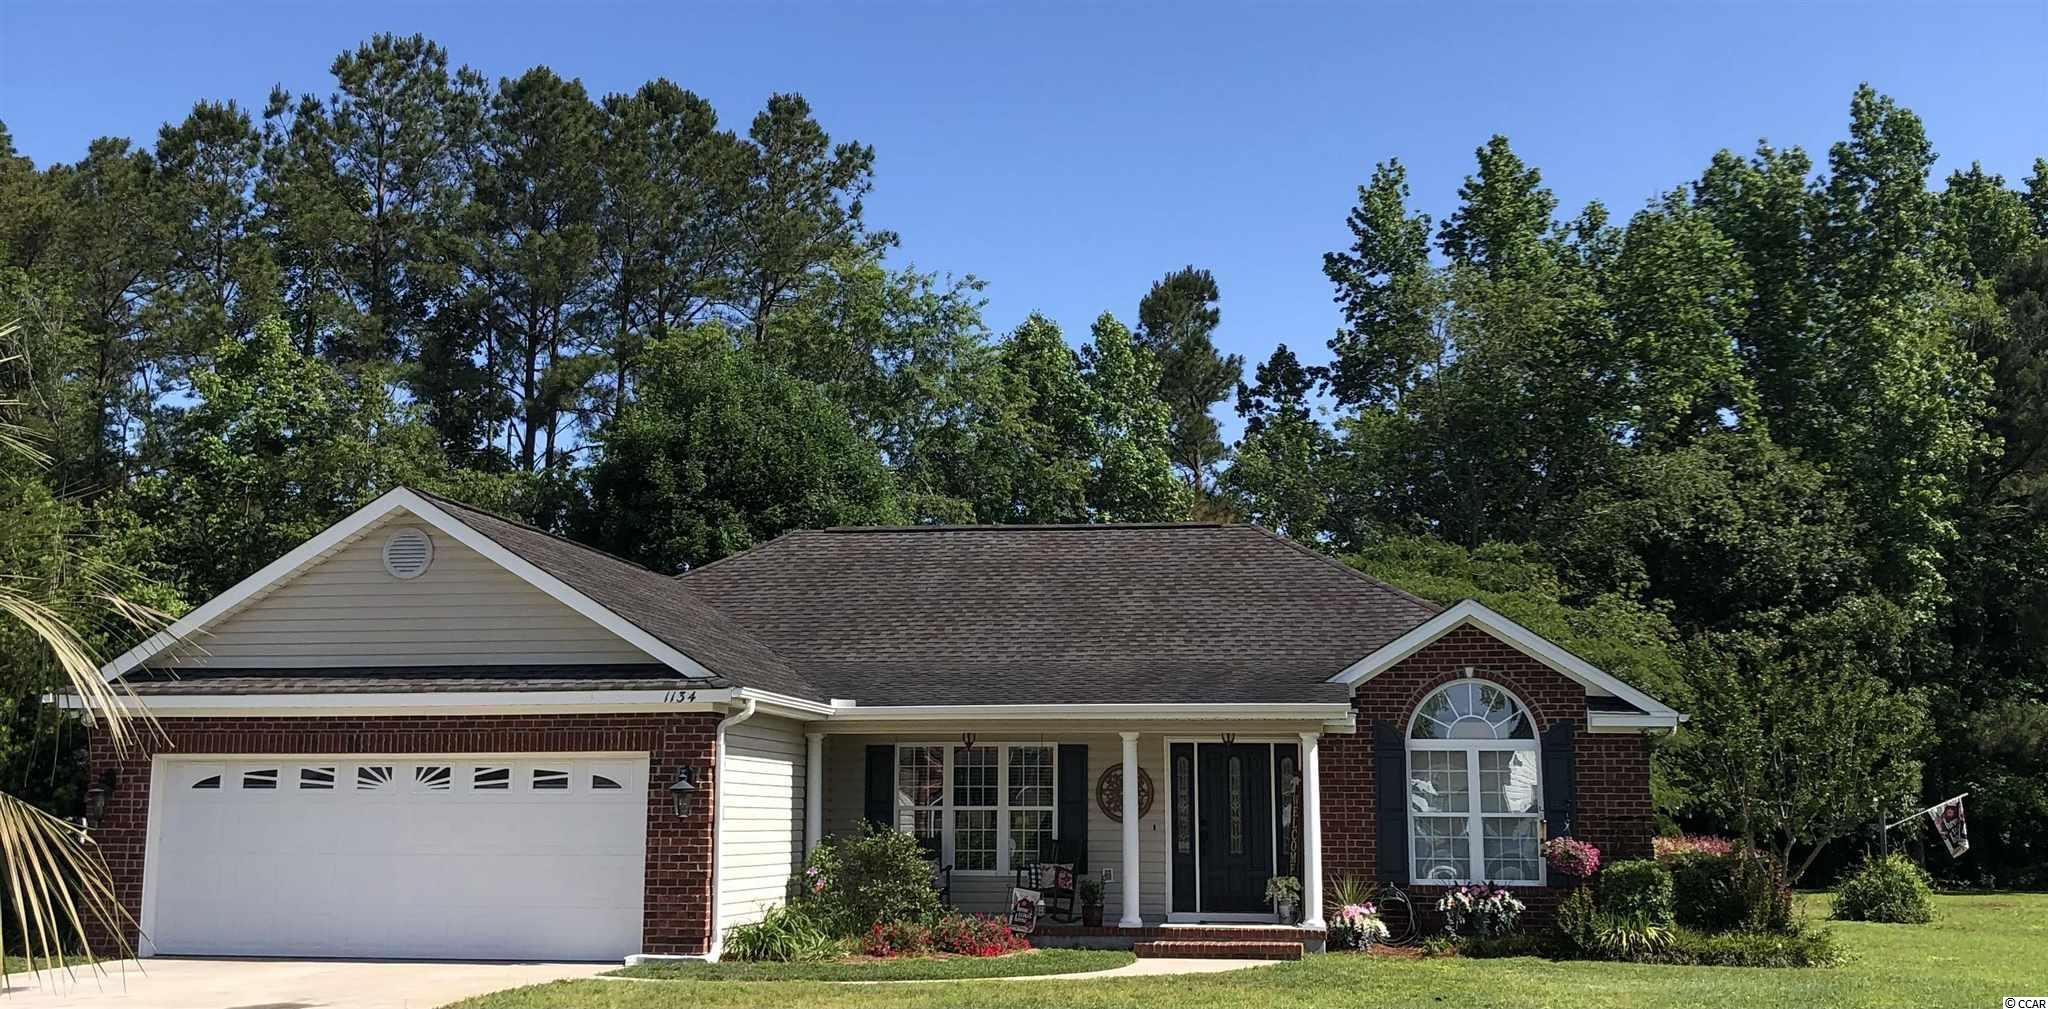 Stunning, split plan, 3 BR/2 BA, attached, double car garage, brick front home on .786 acres located just outside the city limits of Conway (only county taxes). Custom maple, cherry stained cabinetry, stainless steel appliances, hardwood floors in foyer, dining area, family room and hallway. Kitchen, laundry room and both lavatories have distinguished and very stunning stamped concrete flooring. Exquisite gas fireplace focused in the family room and designer paint colors freshly painted throughout this home.  Carpet in both bedrooms was also recently professionally steam cleaned.  The inground sprinkler system allows for the lush landscape and the landscape curbing enhances this homes already remarkable curb appeal. All buyers must view this spectacular home, as it may be just for YOU!!  NO HOA!  The detached storage 12 x 16 storage building also conveys with the property.